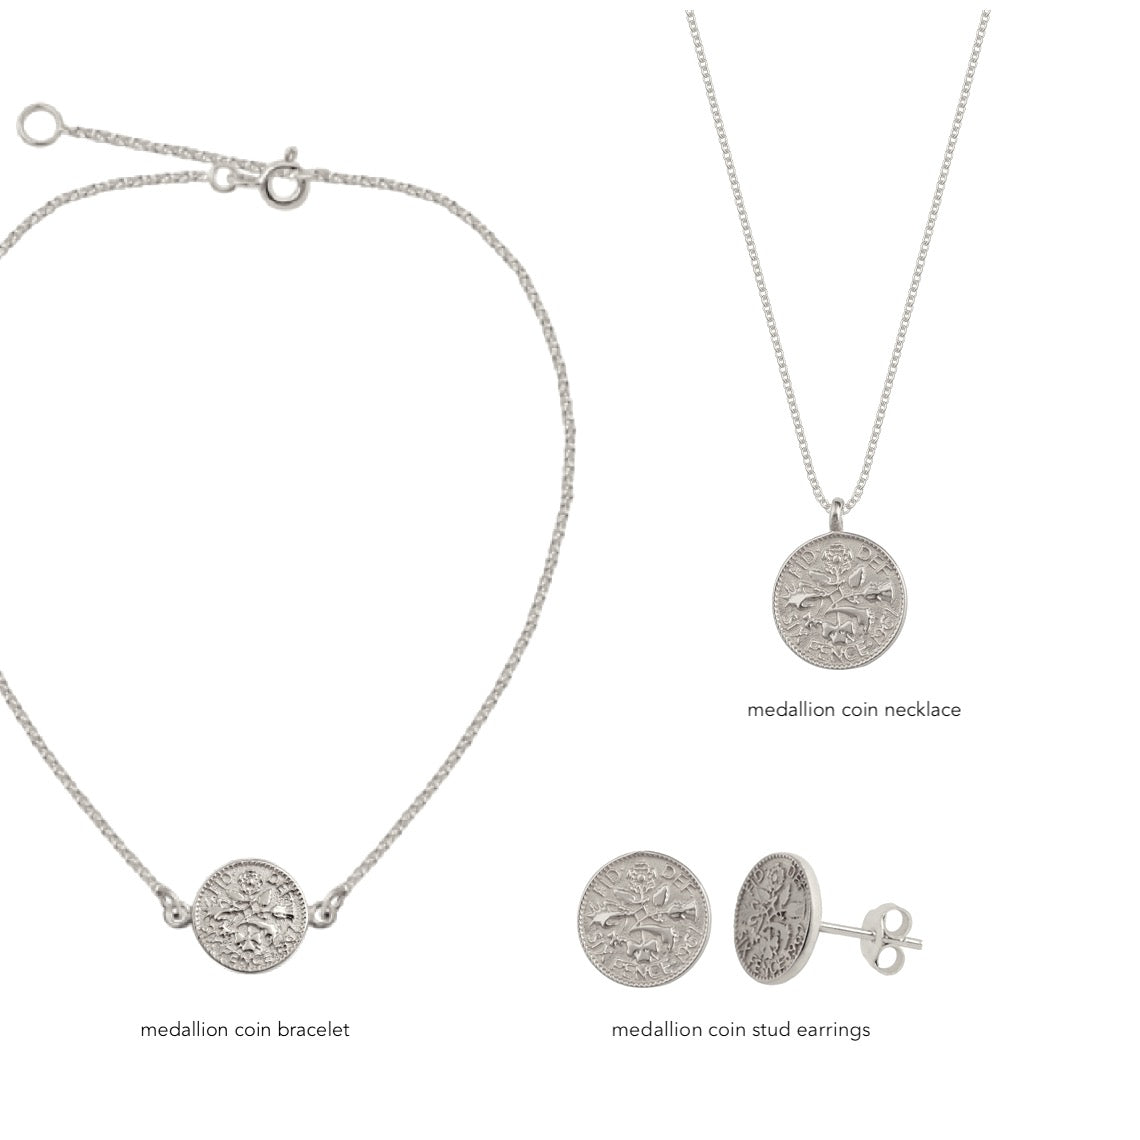 Medallion Coin Bracelet